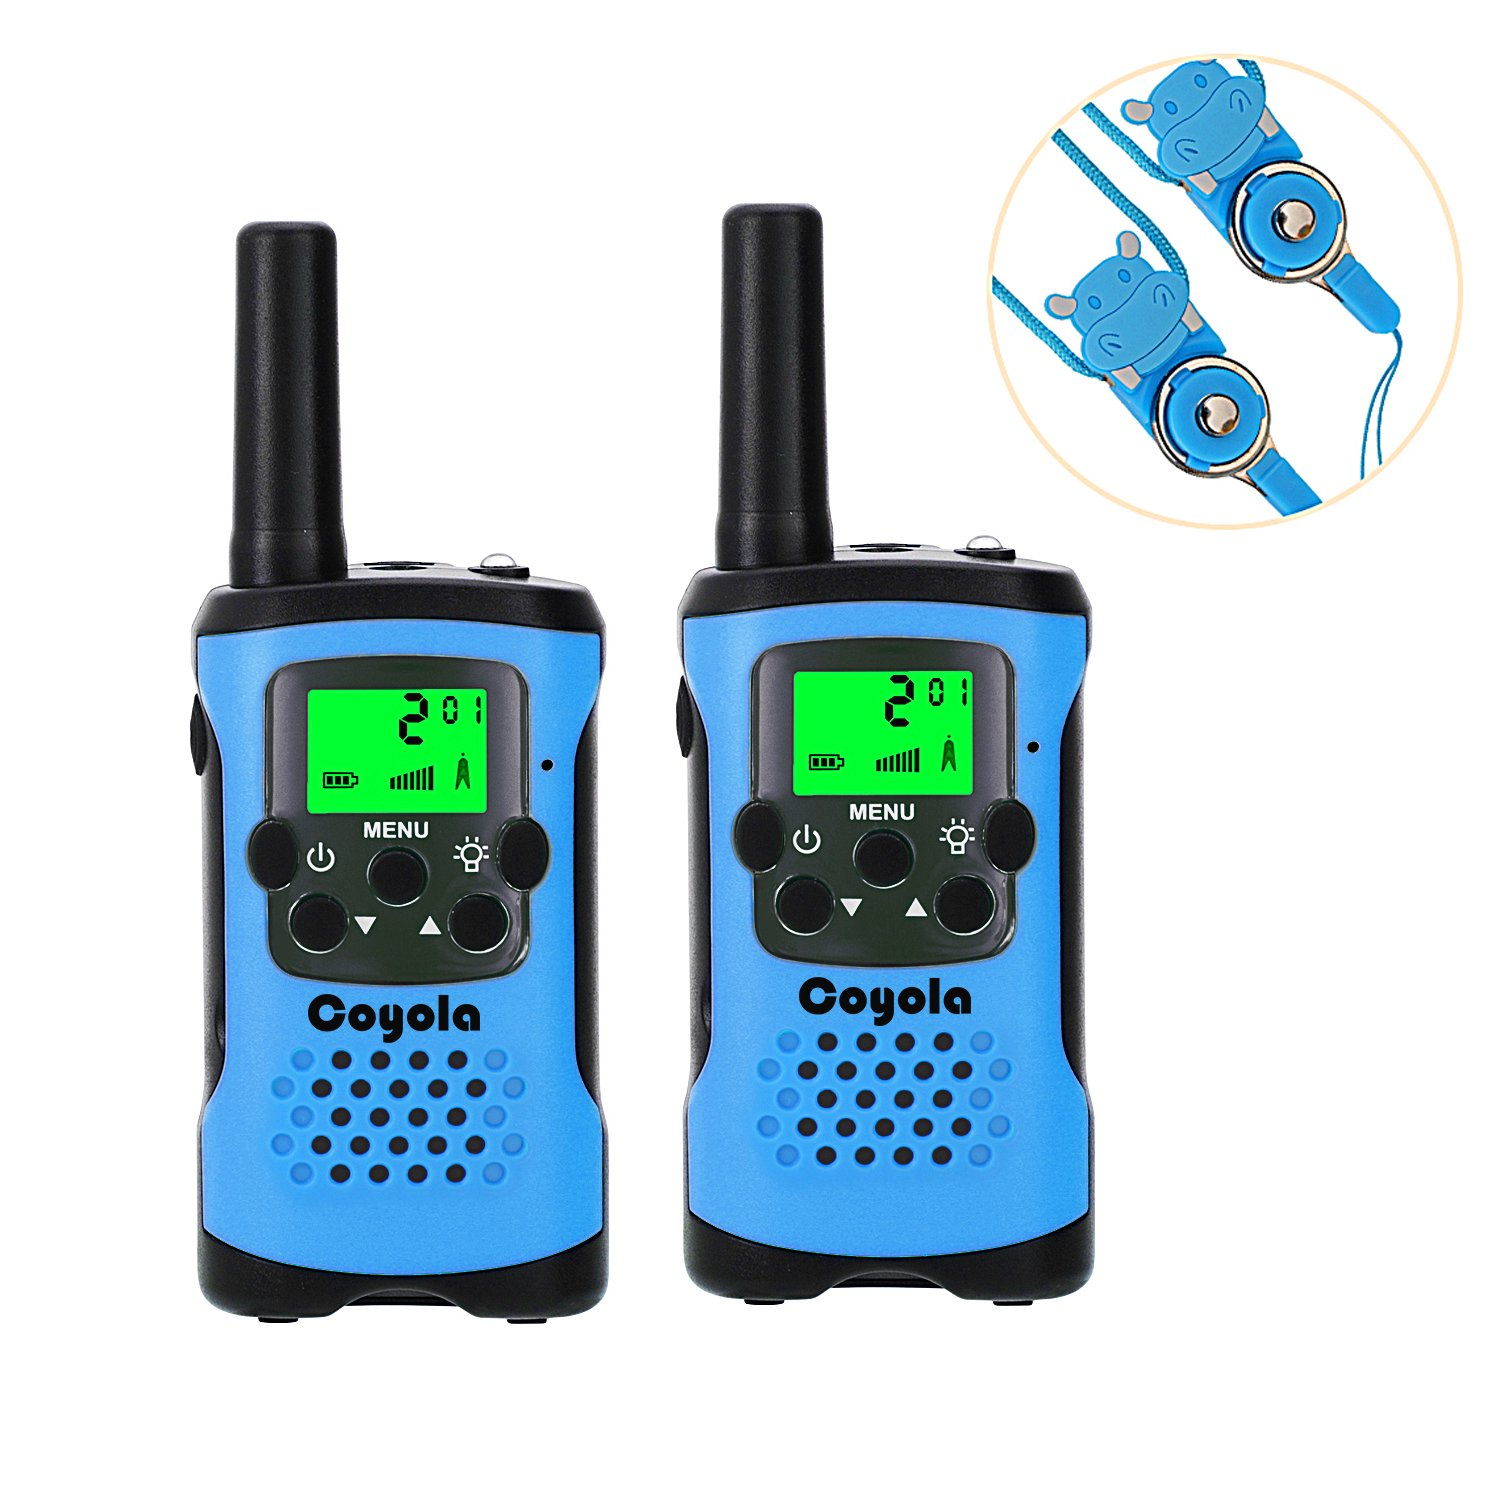 Favorest Walkie Talkies for Kids, Super Easy to Use 4 Miles Long Range Kids Walkie Talkies, 22 Channel 2 Way Radios Toys for Boys Girls Outdoor Adventures with Flashlight and Lanyard (Blue)